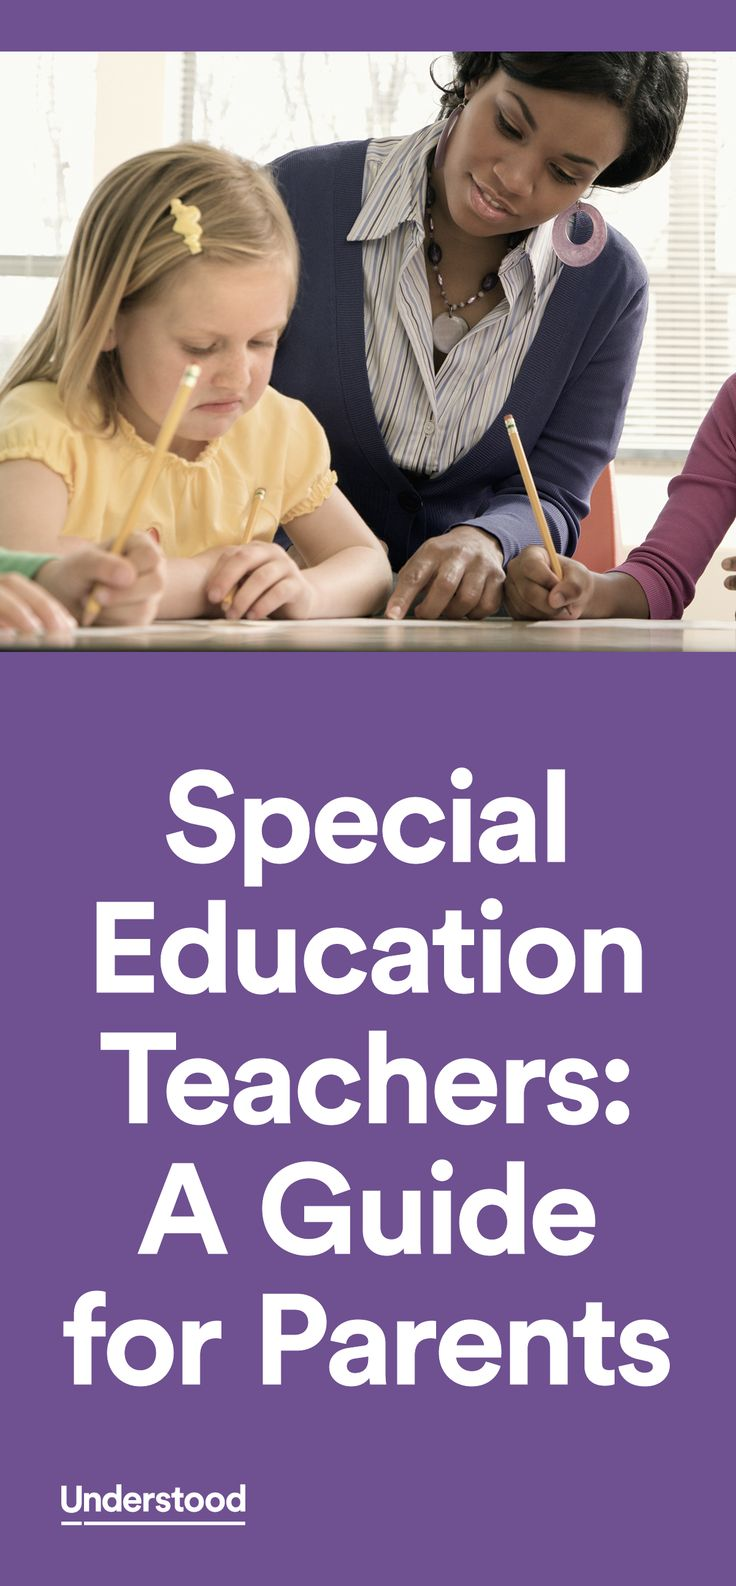 A special education teacher can serve many